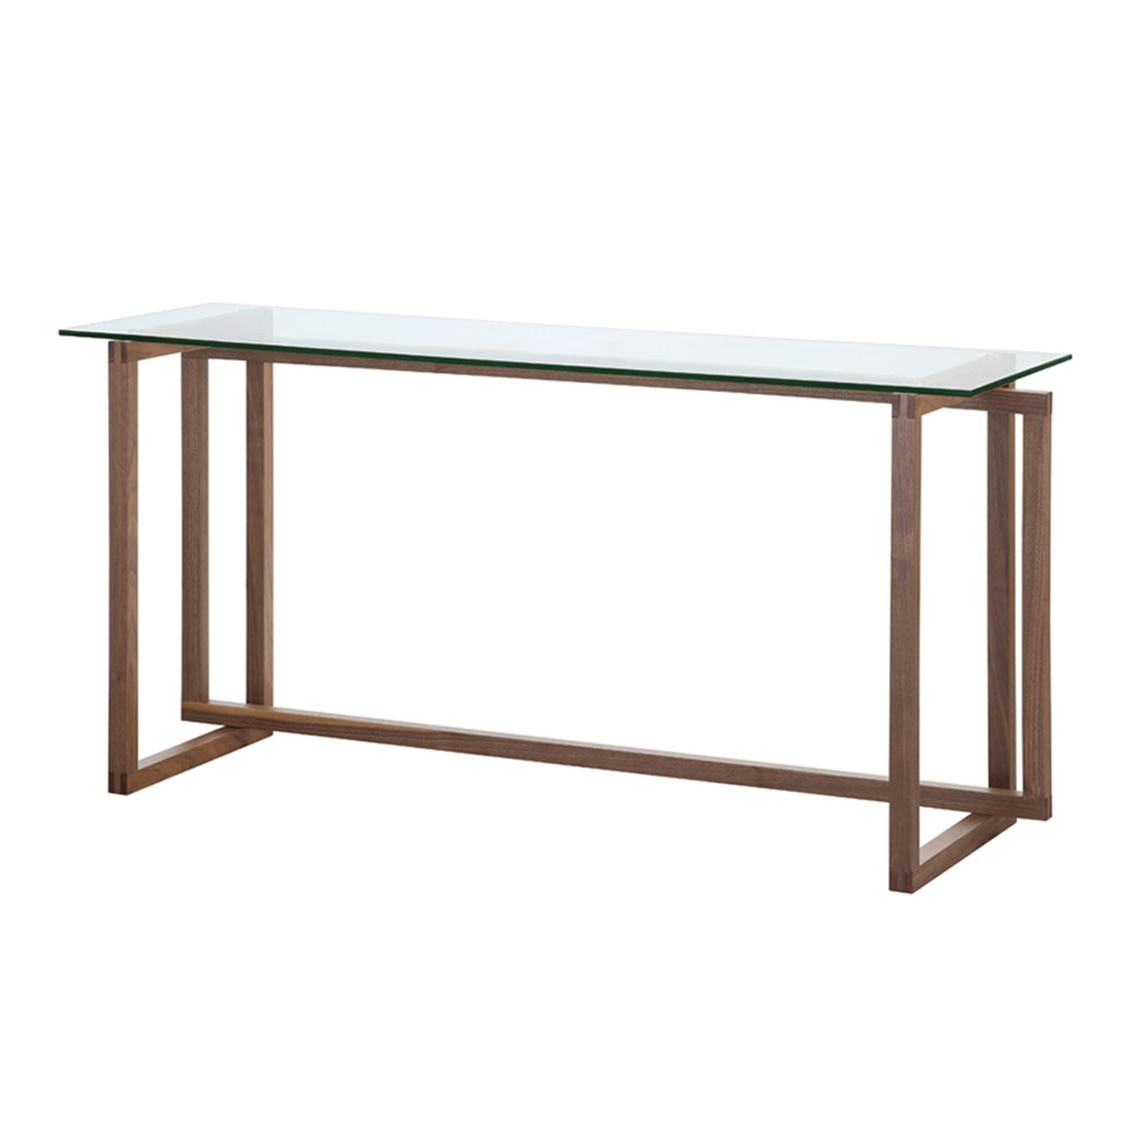 Fashionable Kyra Console Tables Throughout Kyra Console Table (View 4 of 20)